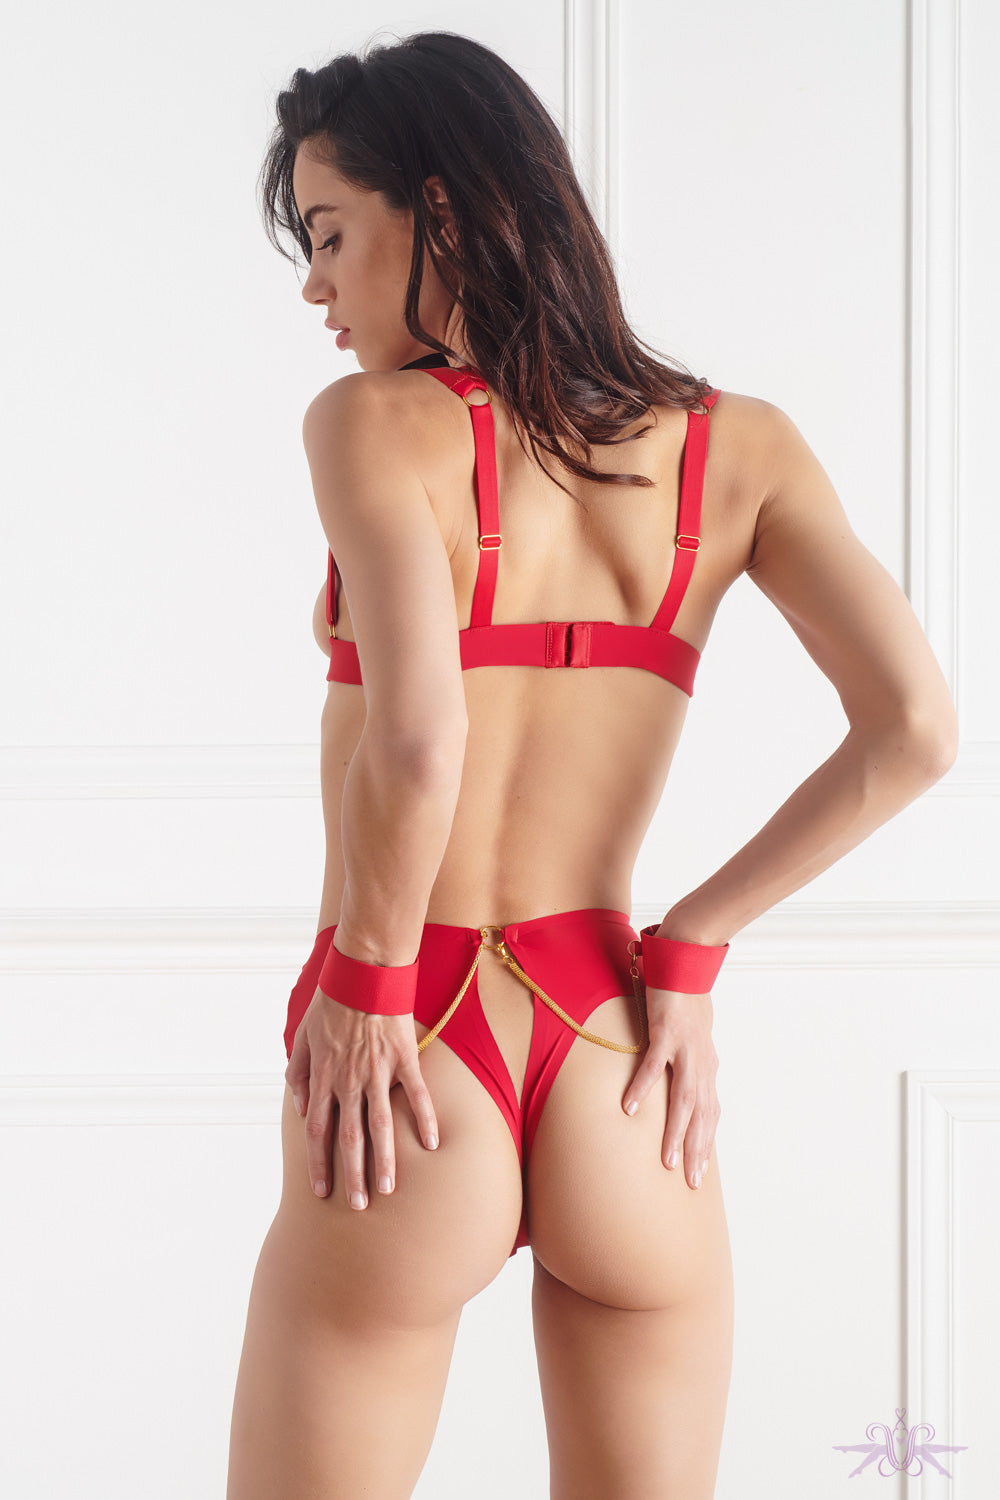 Maison Close Tapage Nocturne Openable High Waist Thong with Cuffs